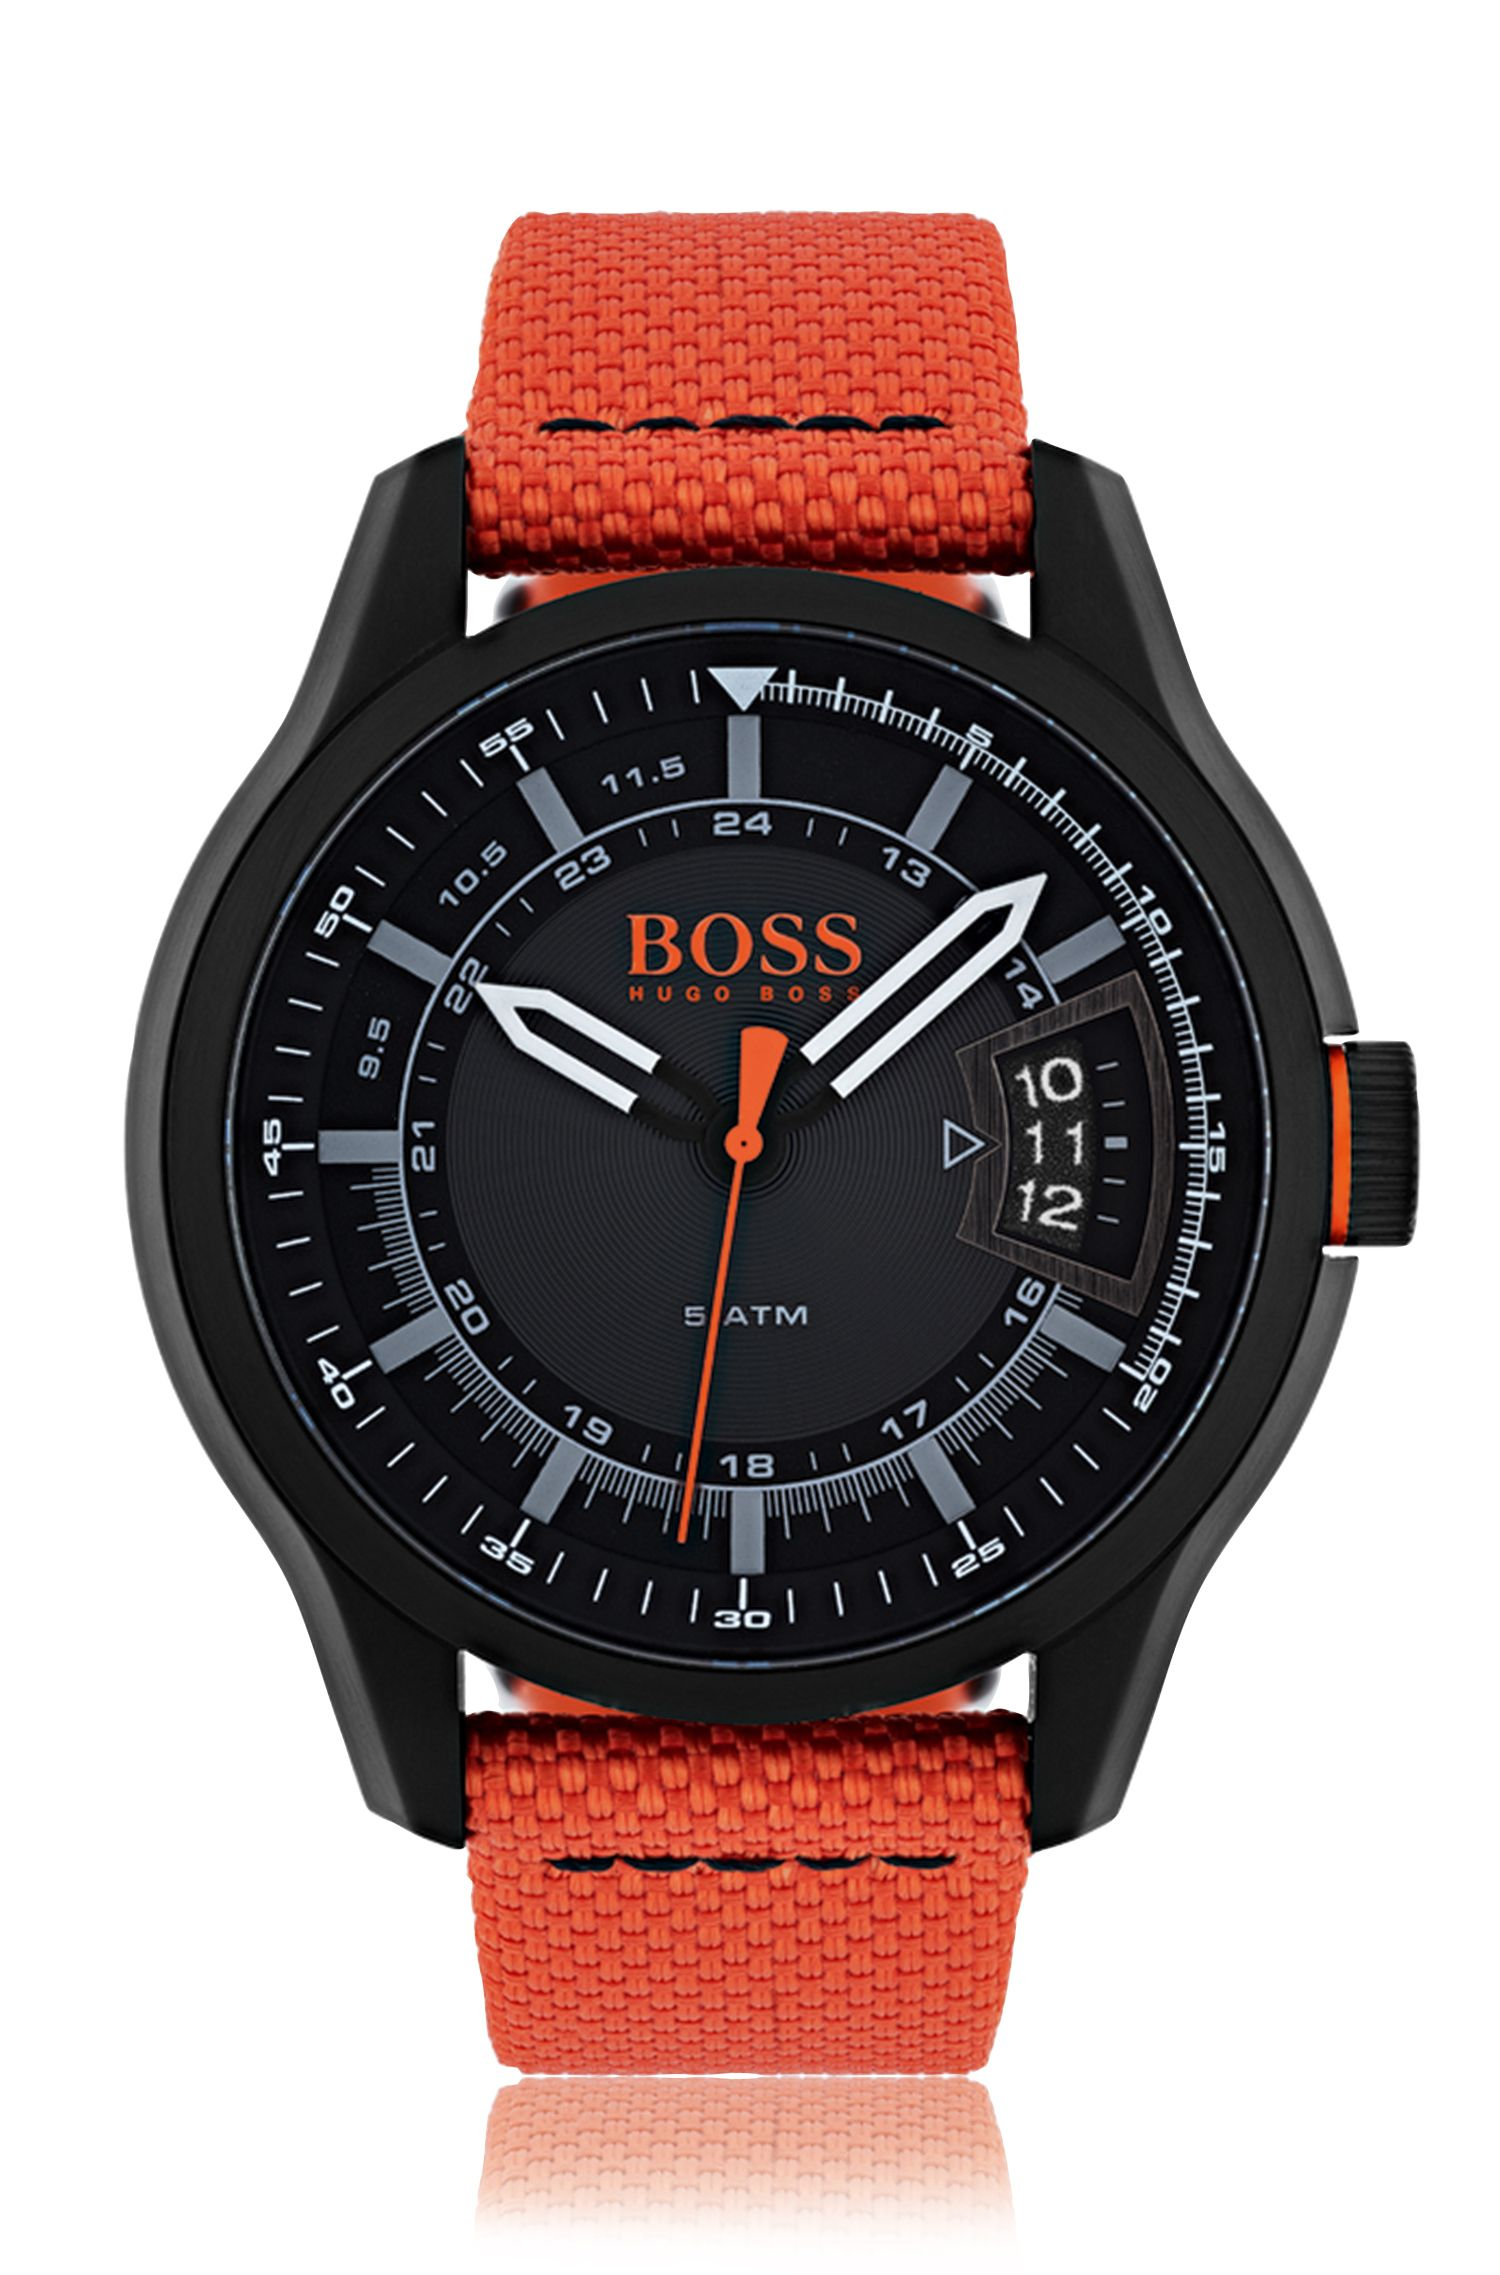 Blackened stainless-steel three-hand watch with orange fabric strap